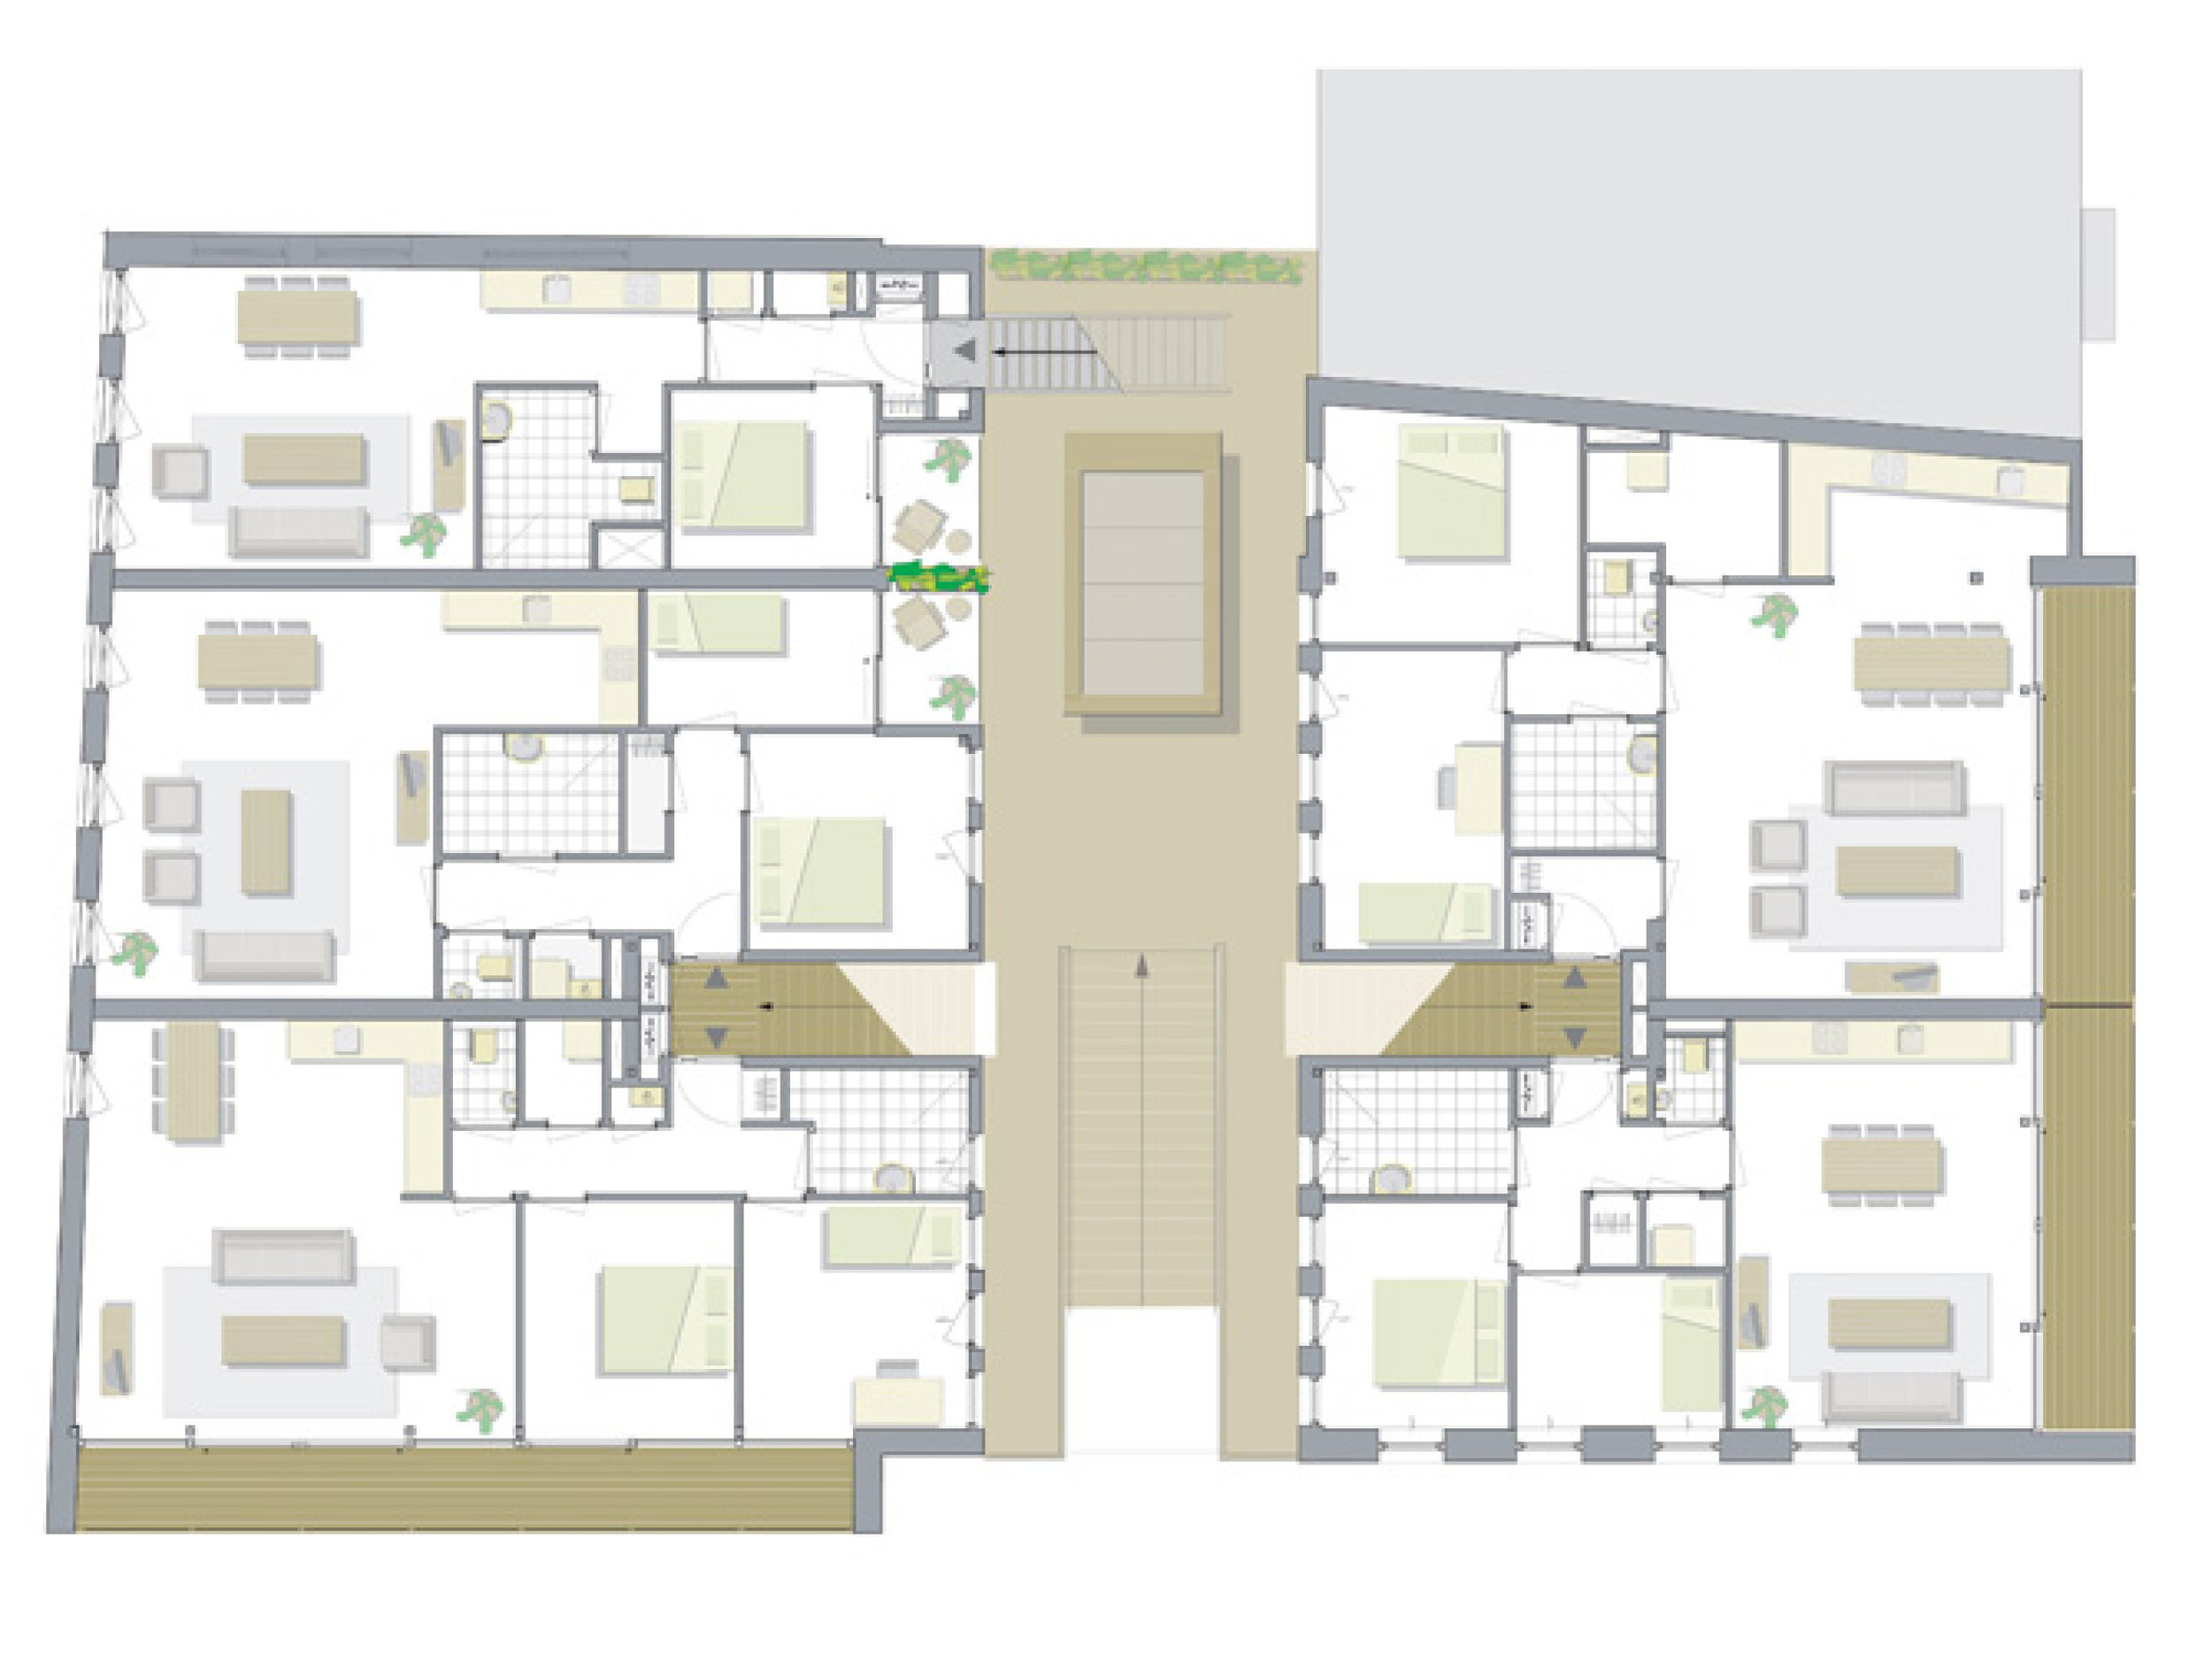 plan of the apartments on the second floor